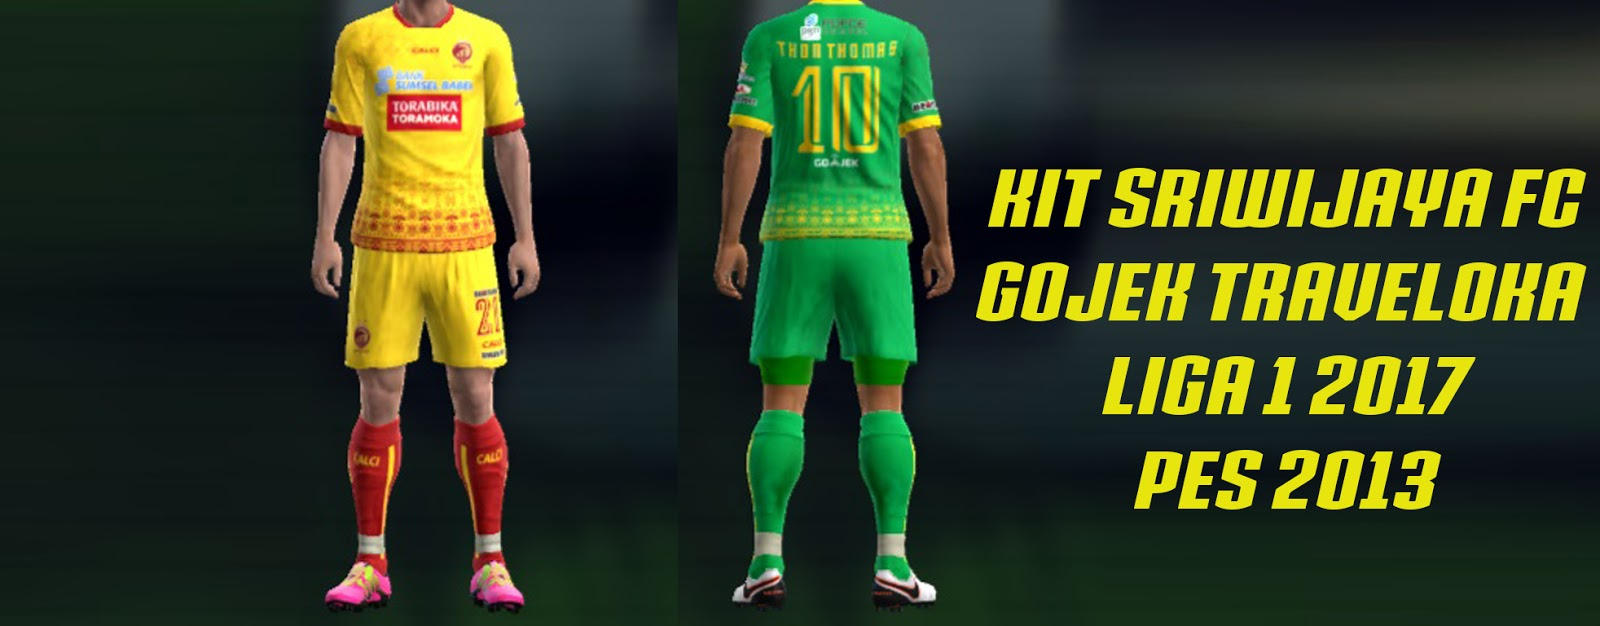 Kit Sriwijaya FC Gojek Traveloka Liga 1 2017 PES 2013